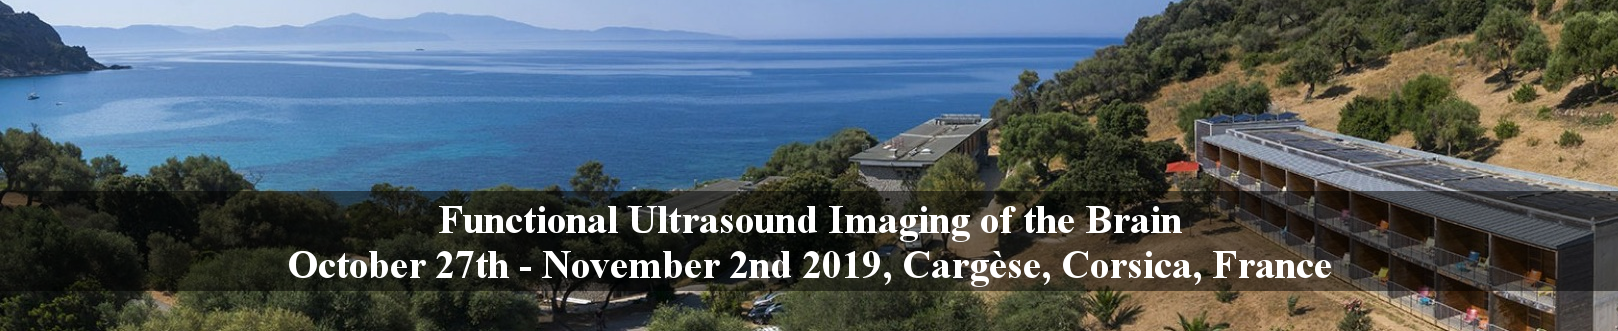 International workshop on Functional Ultrasound Imaging of the Brain